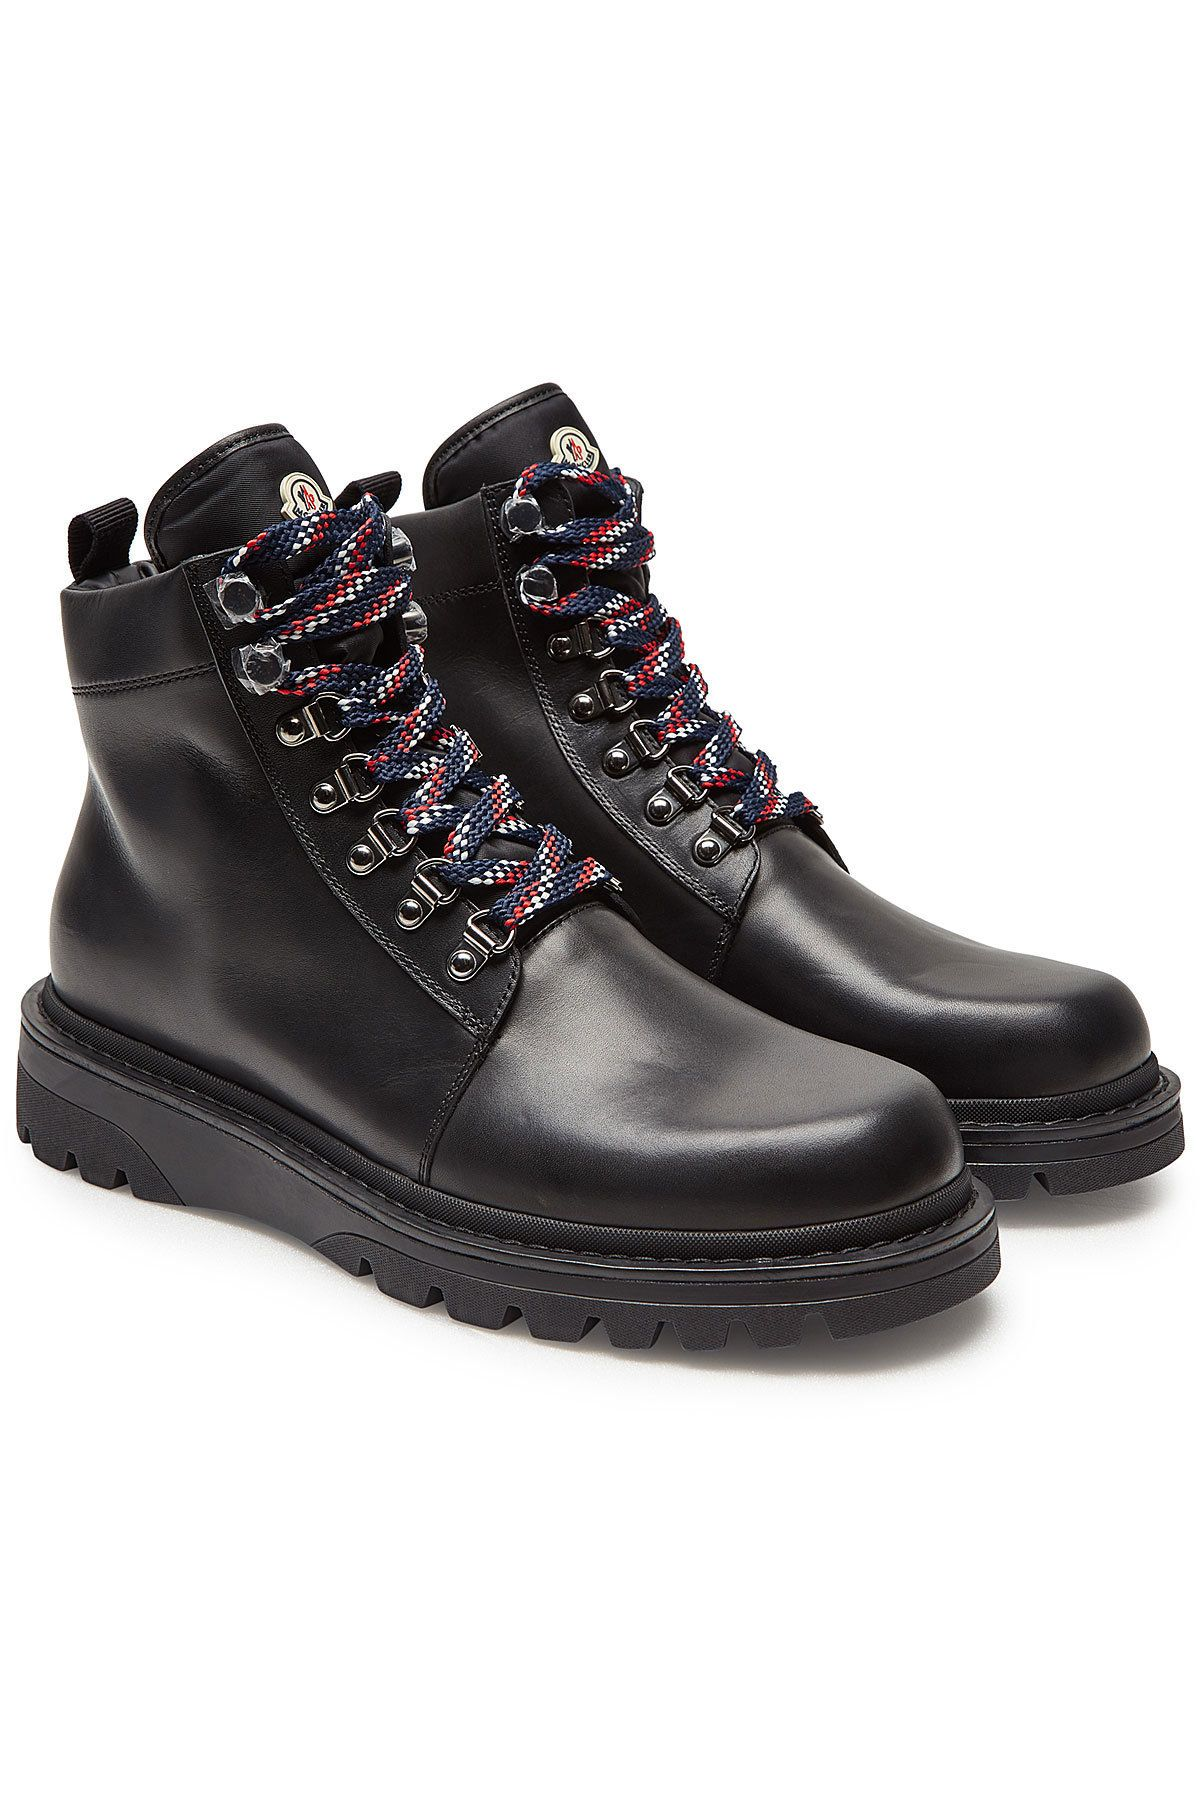 1a3eb0f339f4 MONCLER ISAAC LEATHER ANKLE BOOTS.  moncler  shoes